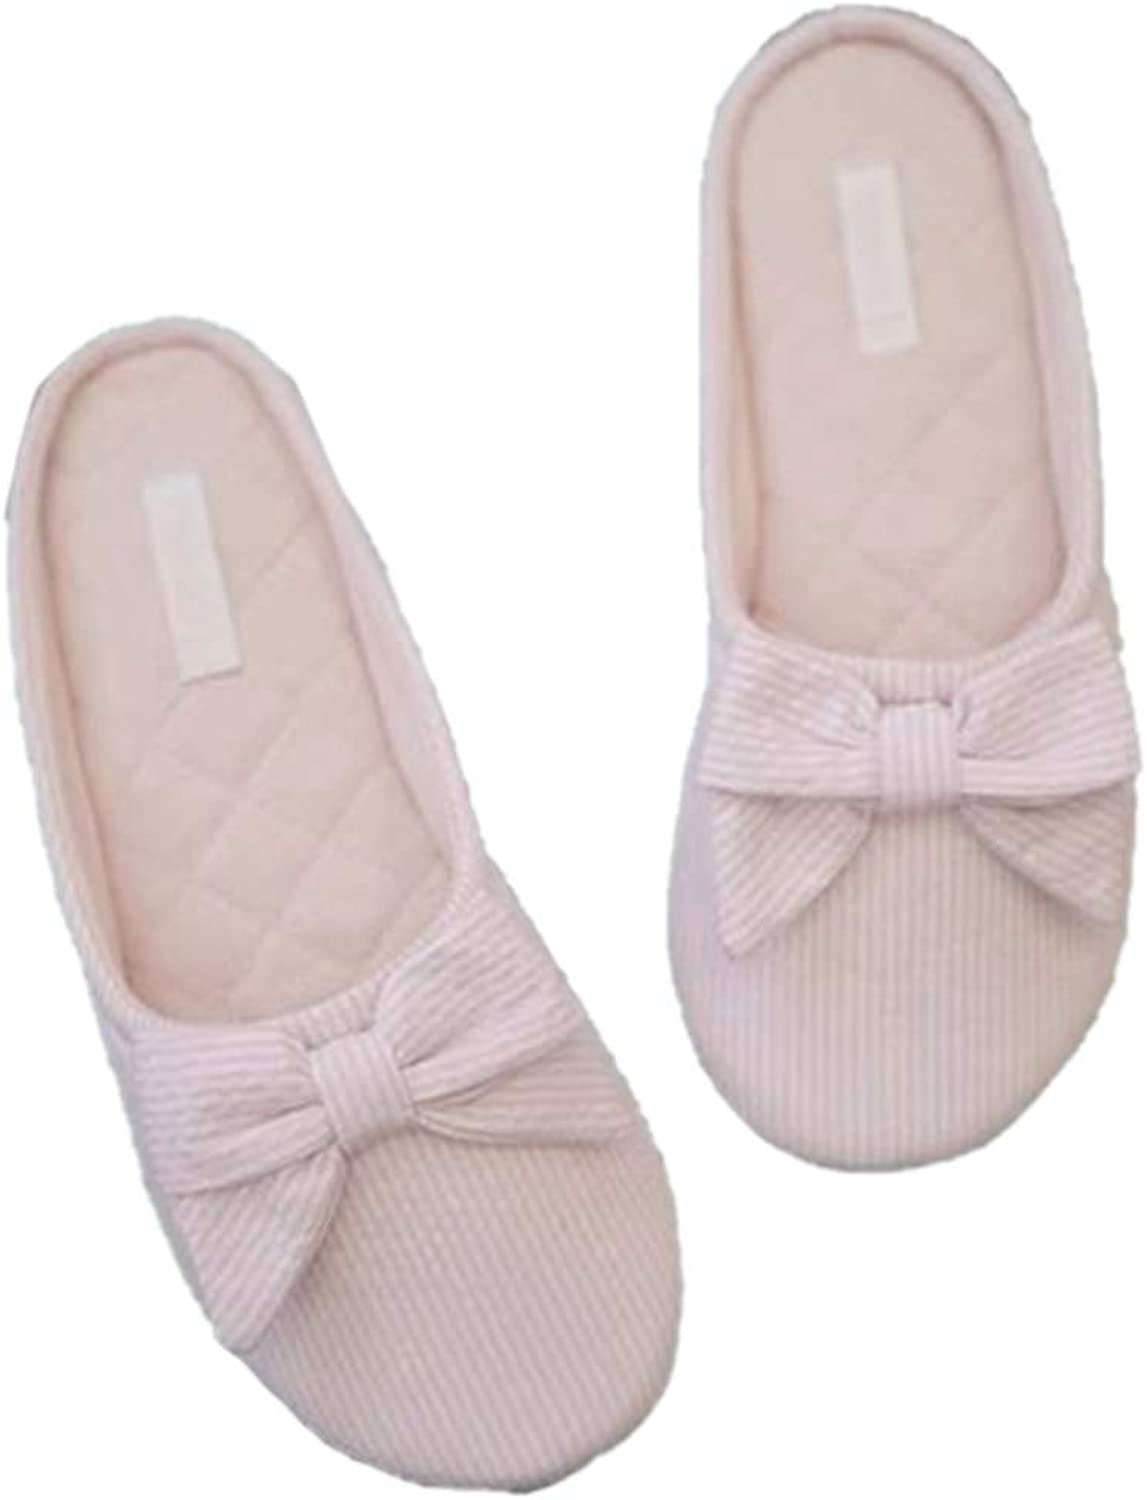 Nafanio Striped Winter Slippers Warm Women Home House shoes for Indoor Bedroom Flats Cotton shoes